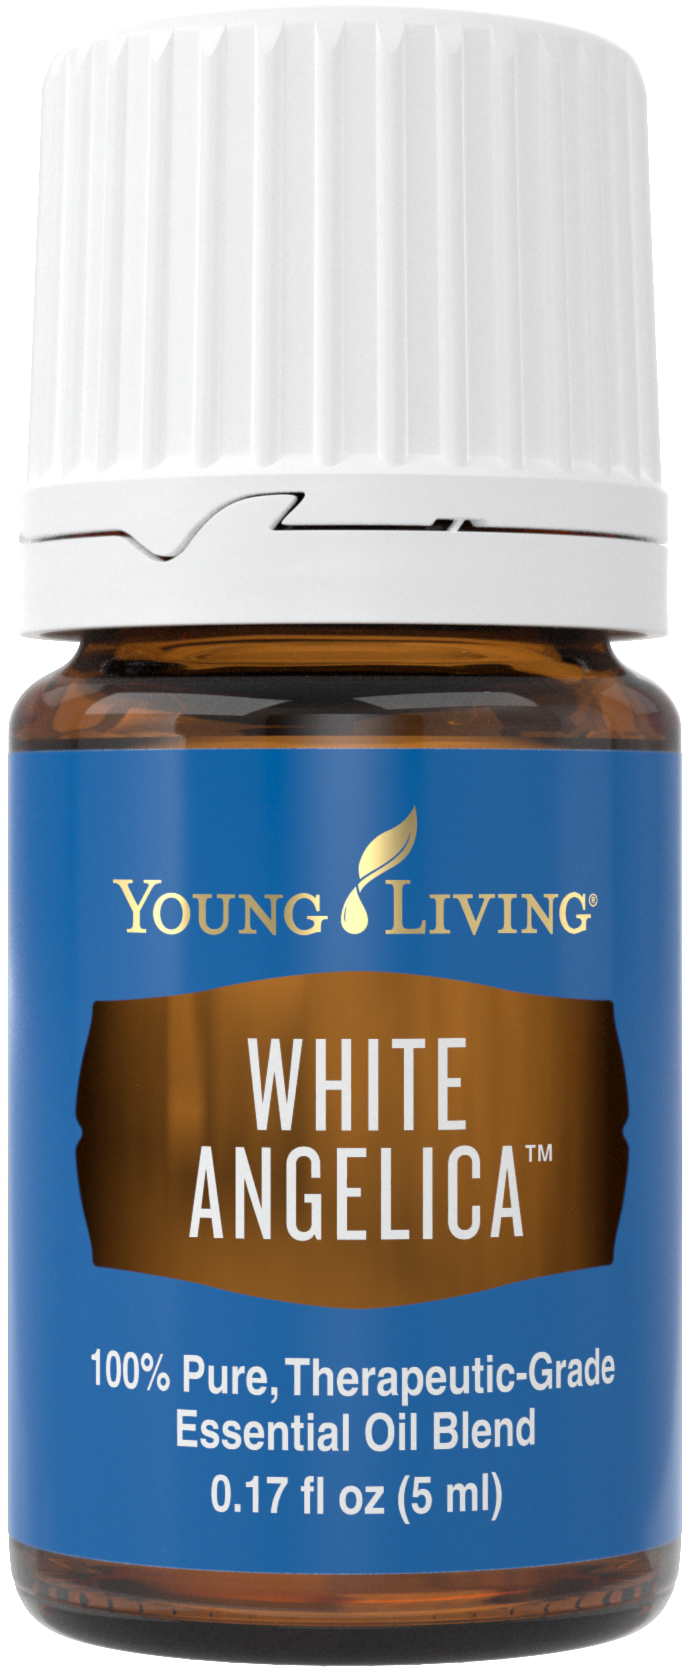 Blends Young Living Essential Oils Of Therapeutic